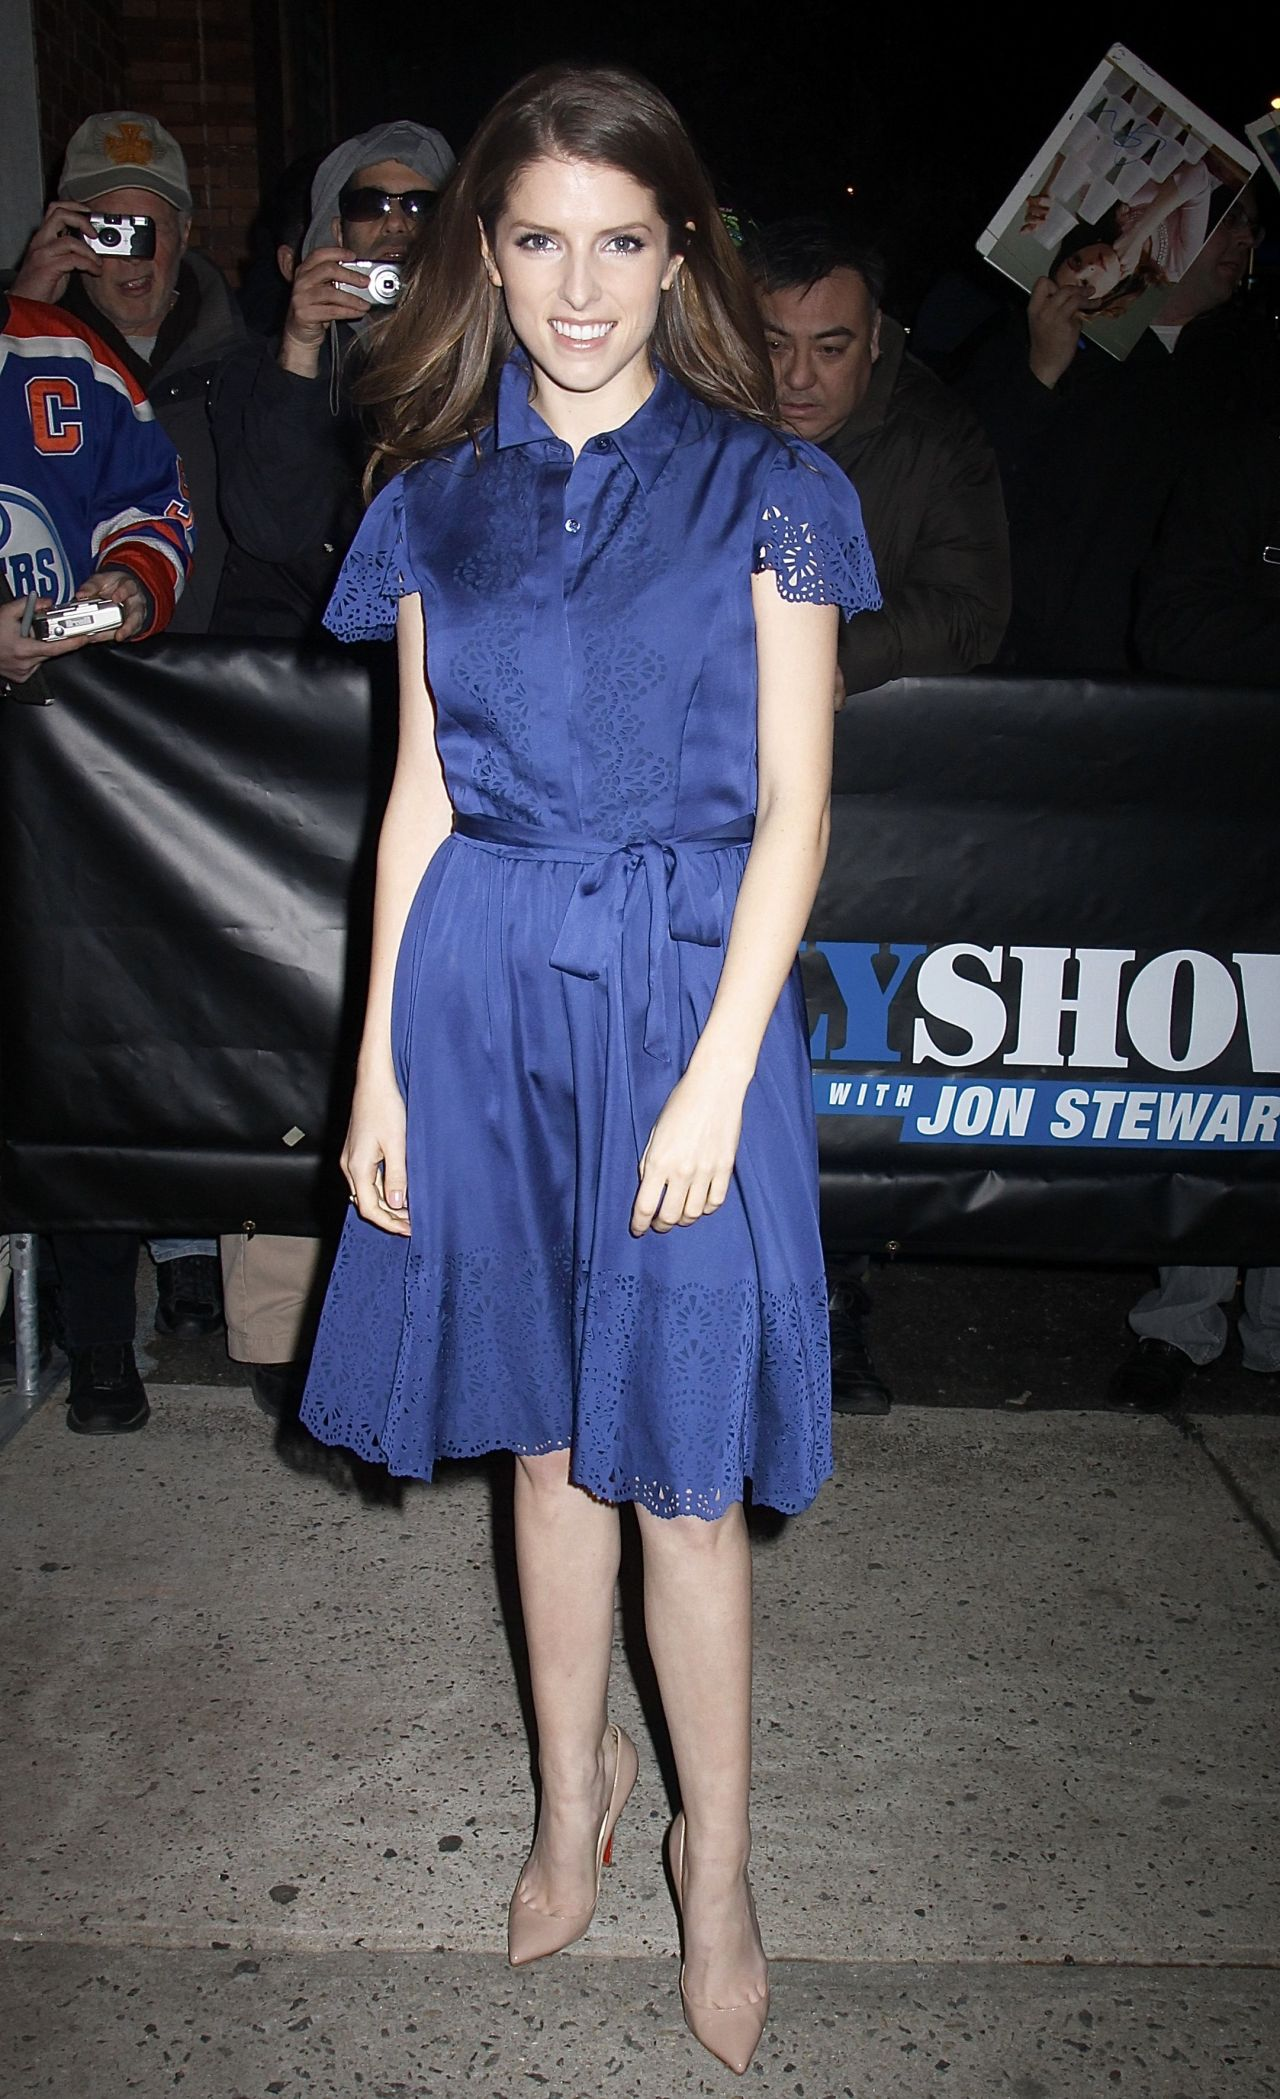 Anna Kendrick Arriving to Appear on The Daily Show in New York City - December 2014